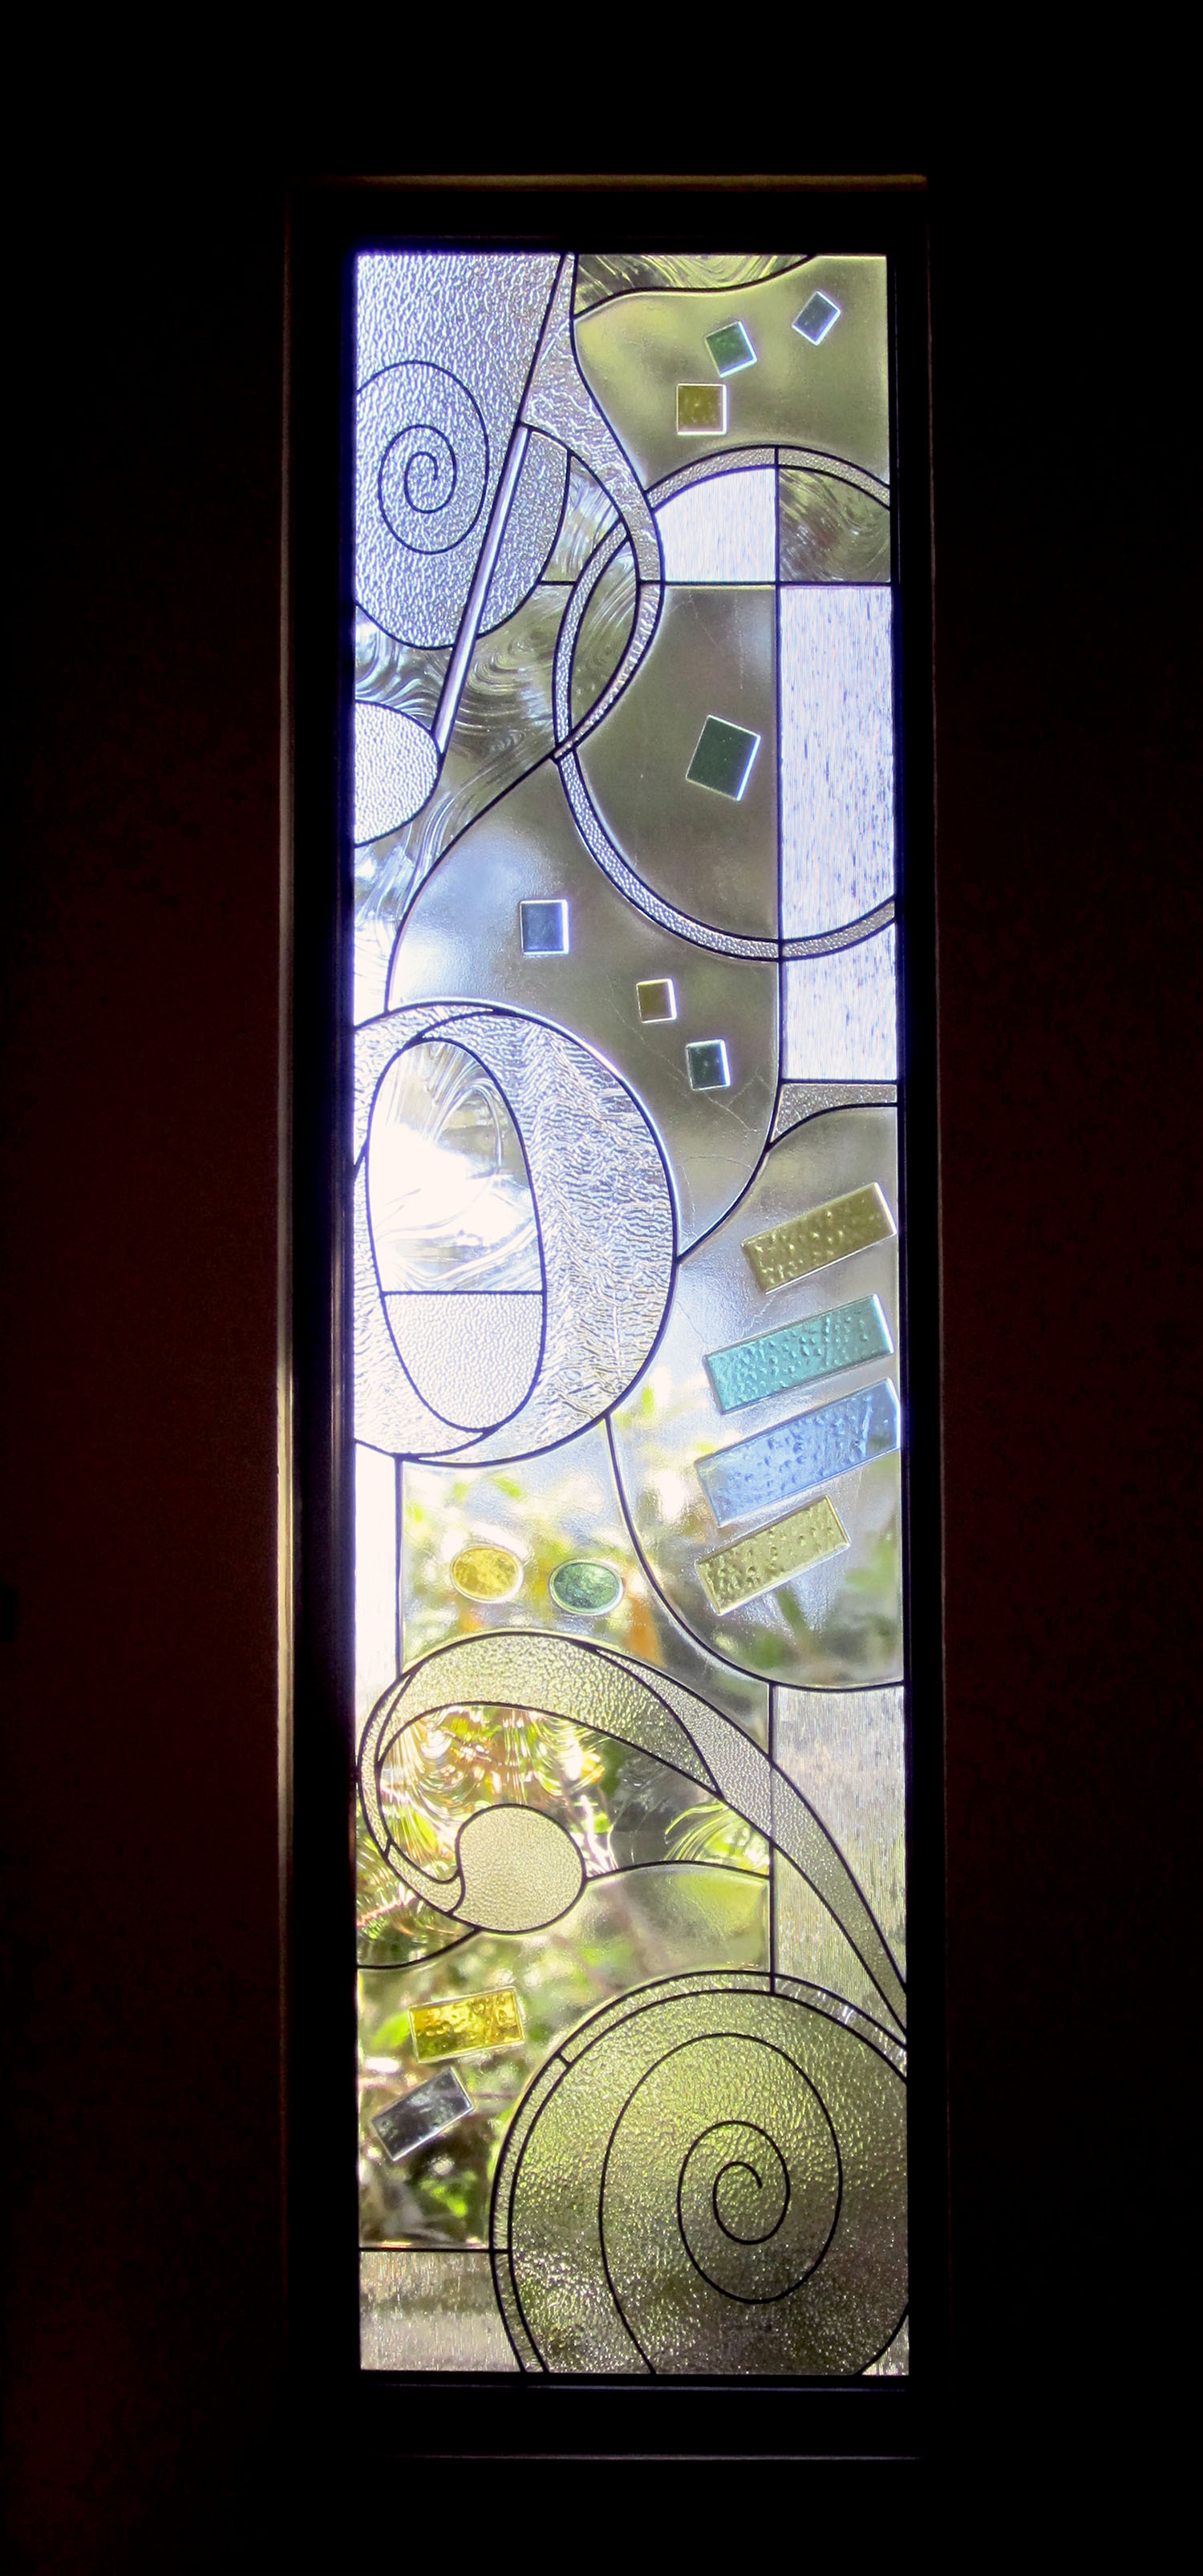 fused glass stained glass abstract art palo alto atherton menlo park san jose san francisco bay area.jpg